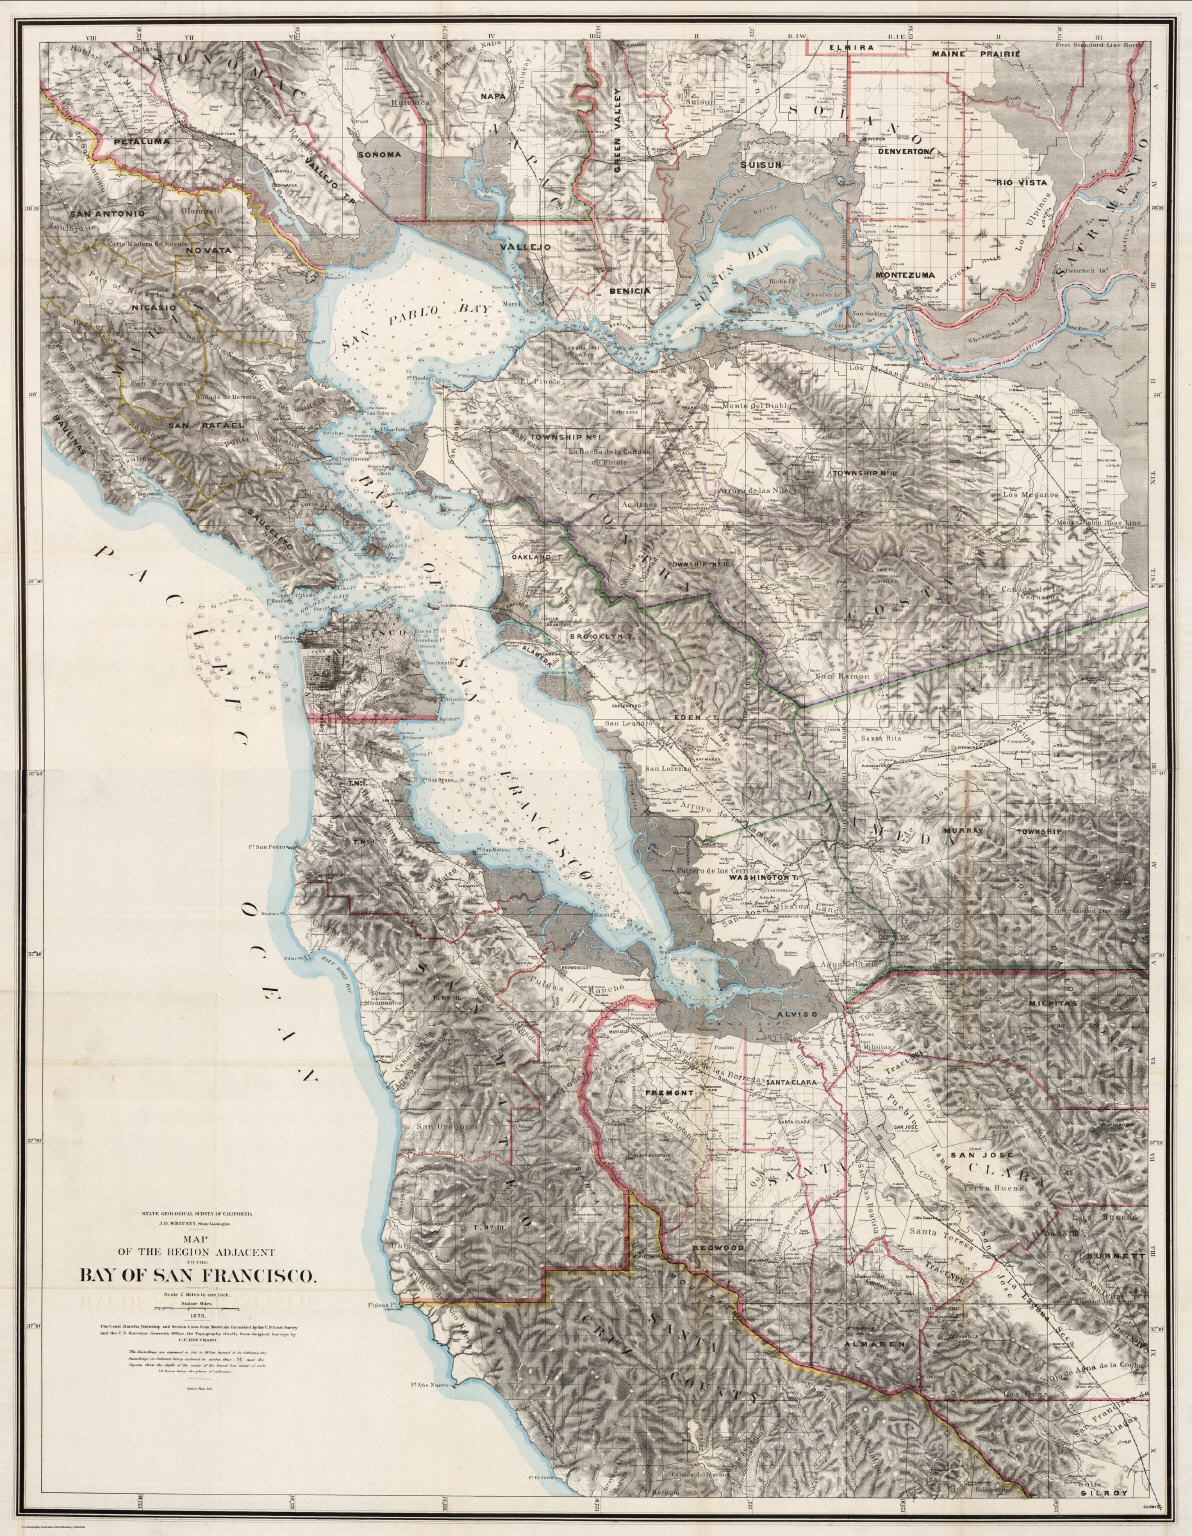 Composite Map Of The Region Adjacent To The Bay Of San Francisco David Rumsey Historical Map Collection